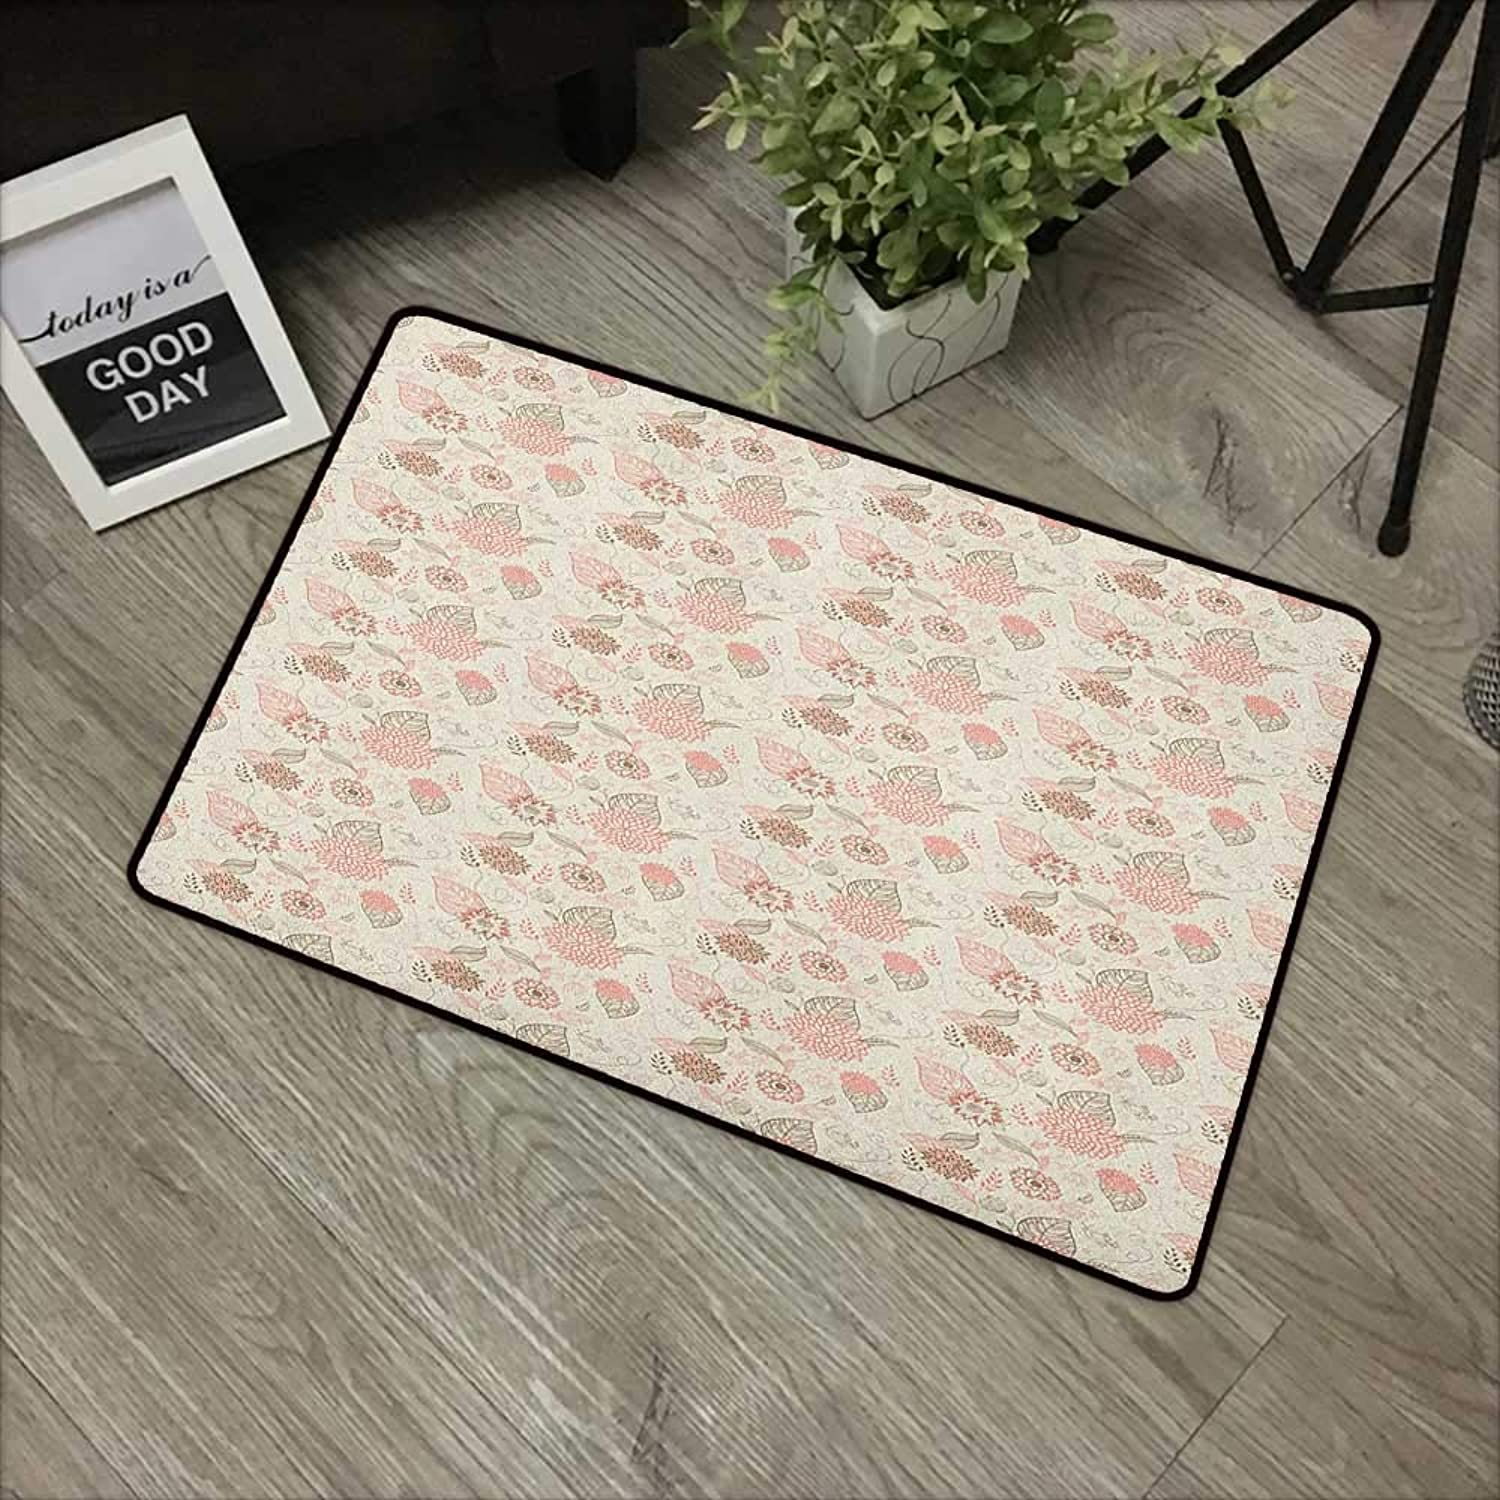 Clear Printed Pattern Door mat W24 x L35 INCH Vintage,Pastel colord Bird Butterfly and Flower Outlines with Ornamental Swirls, pink Sepia Beige with Non-Slip Backing Door Mat Carpet